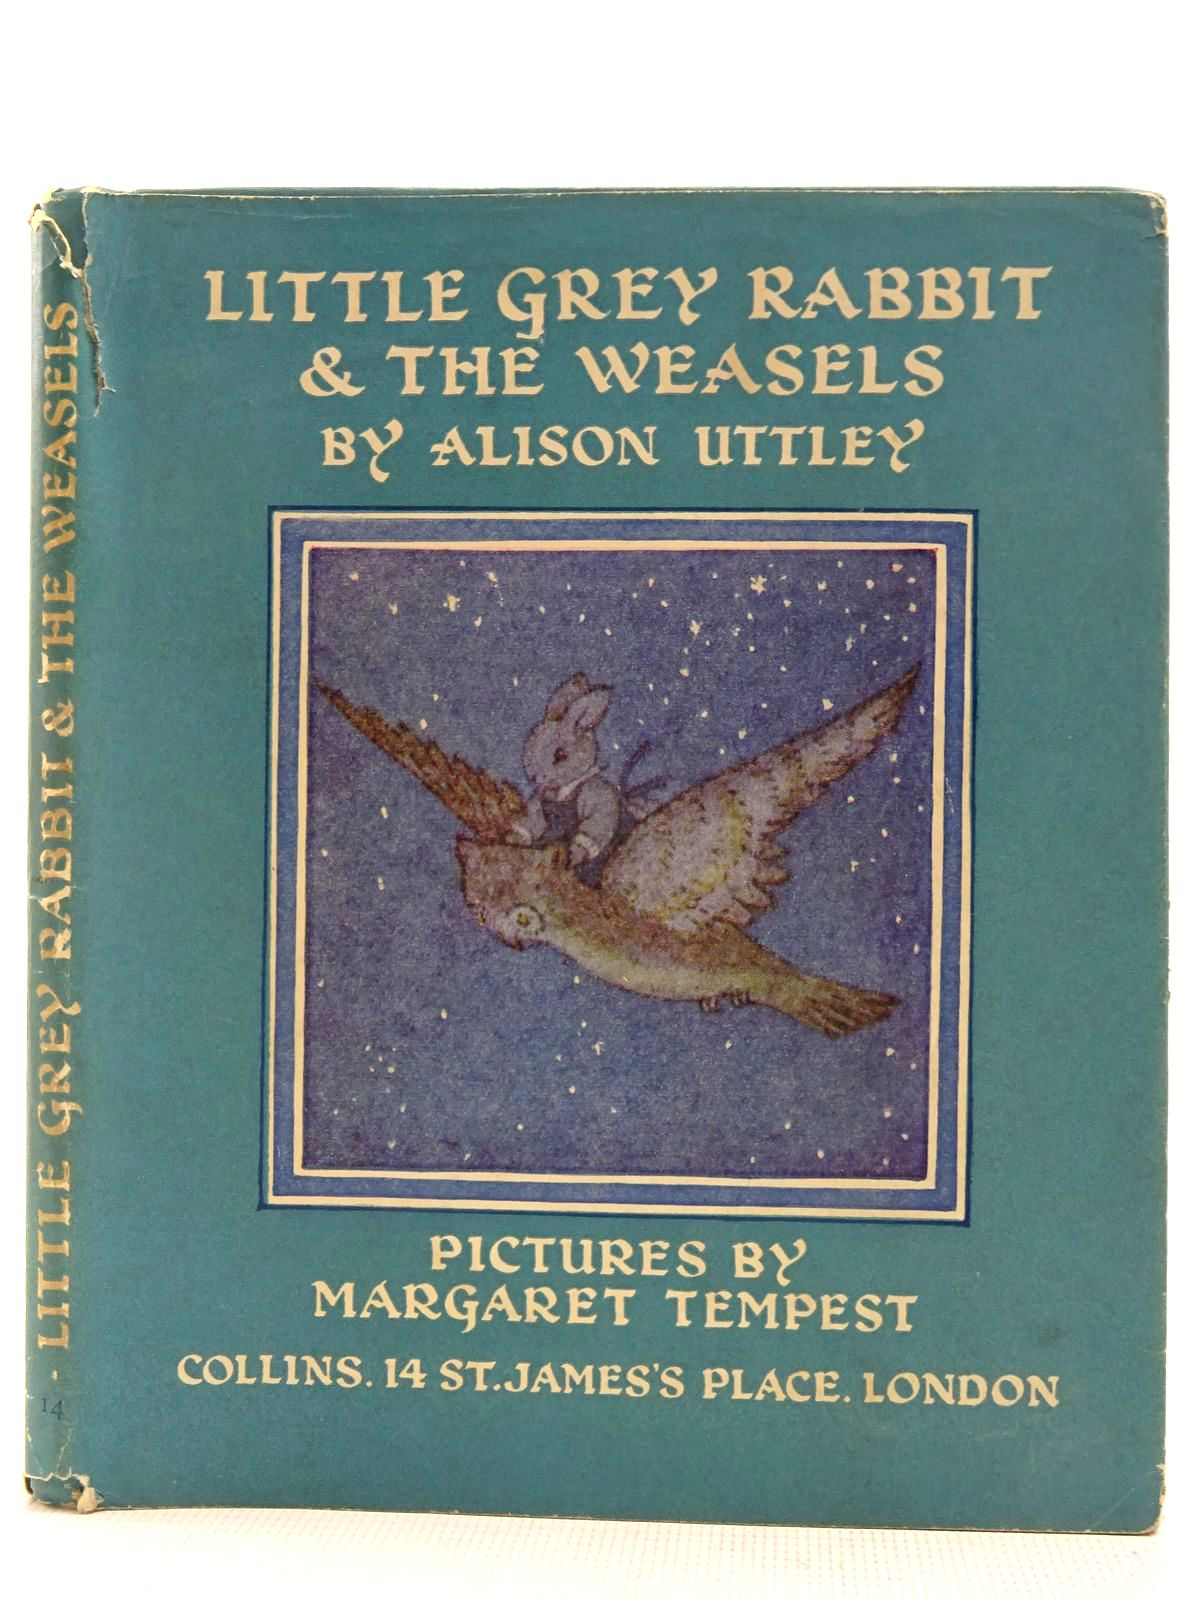 Photo of LITTLE GREY RABBIT & THE WEASELS written by Uttley, Alison illustrated by Tempest, Margaret published by Collins (STOCK CODE: 2128471)  for sale by Stella & Rose's Books